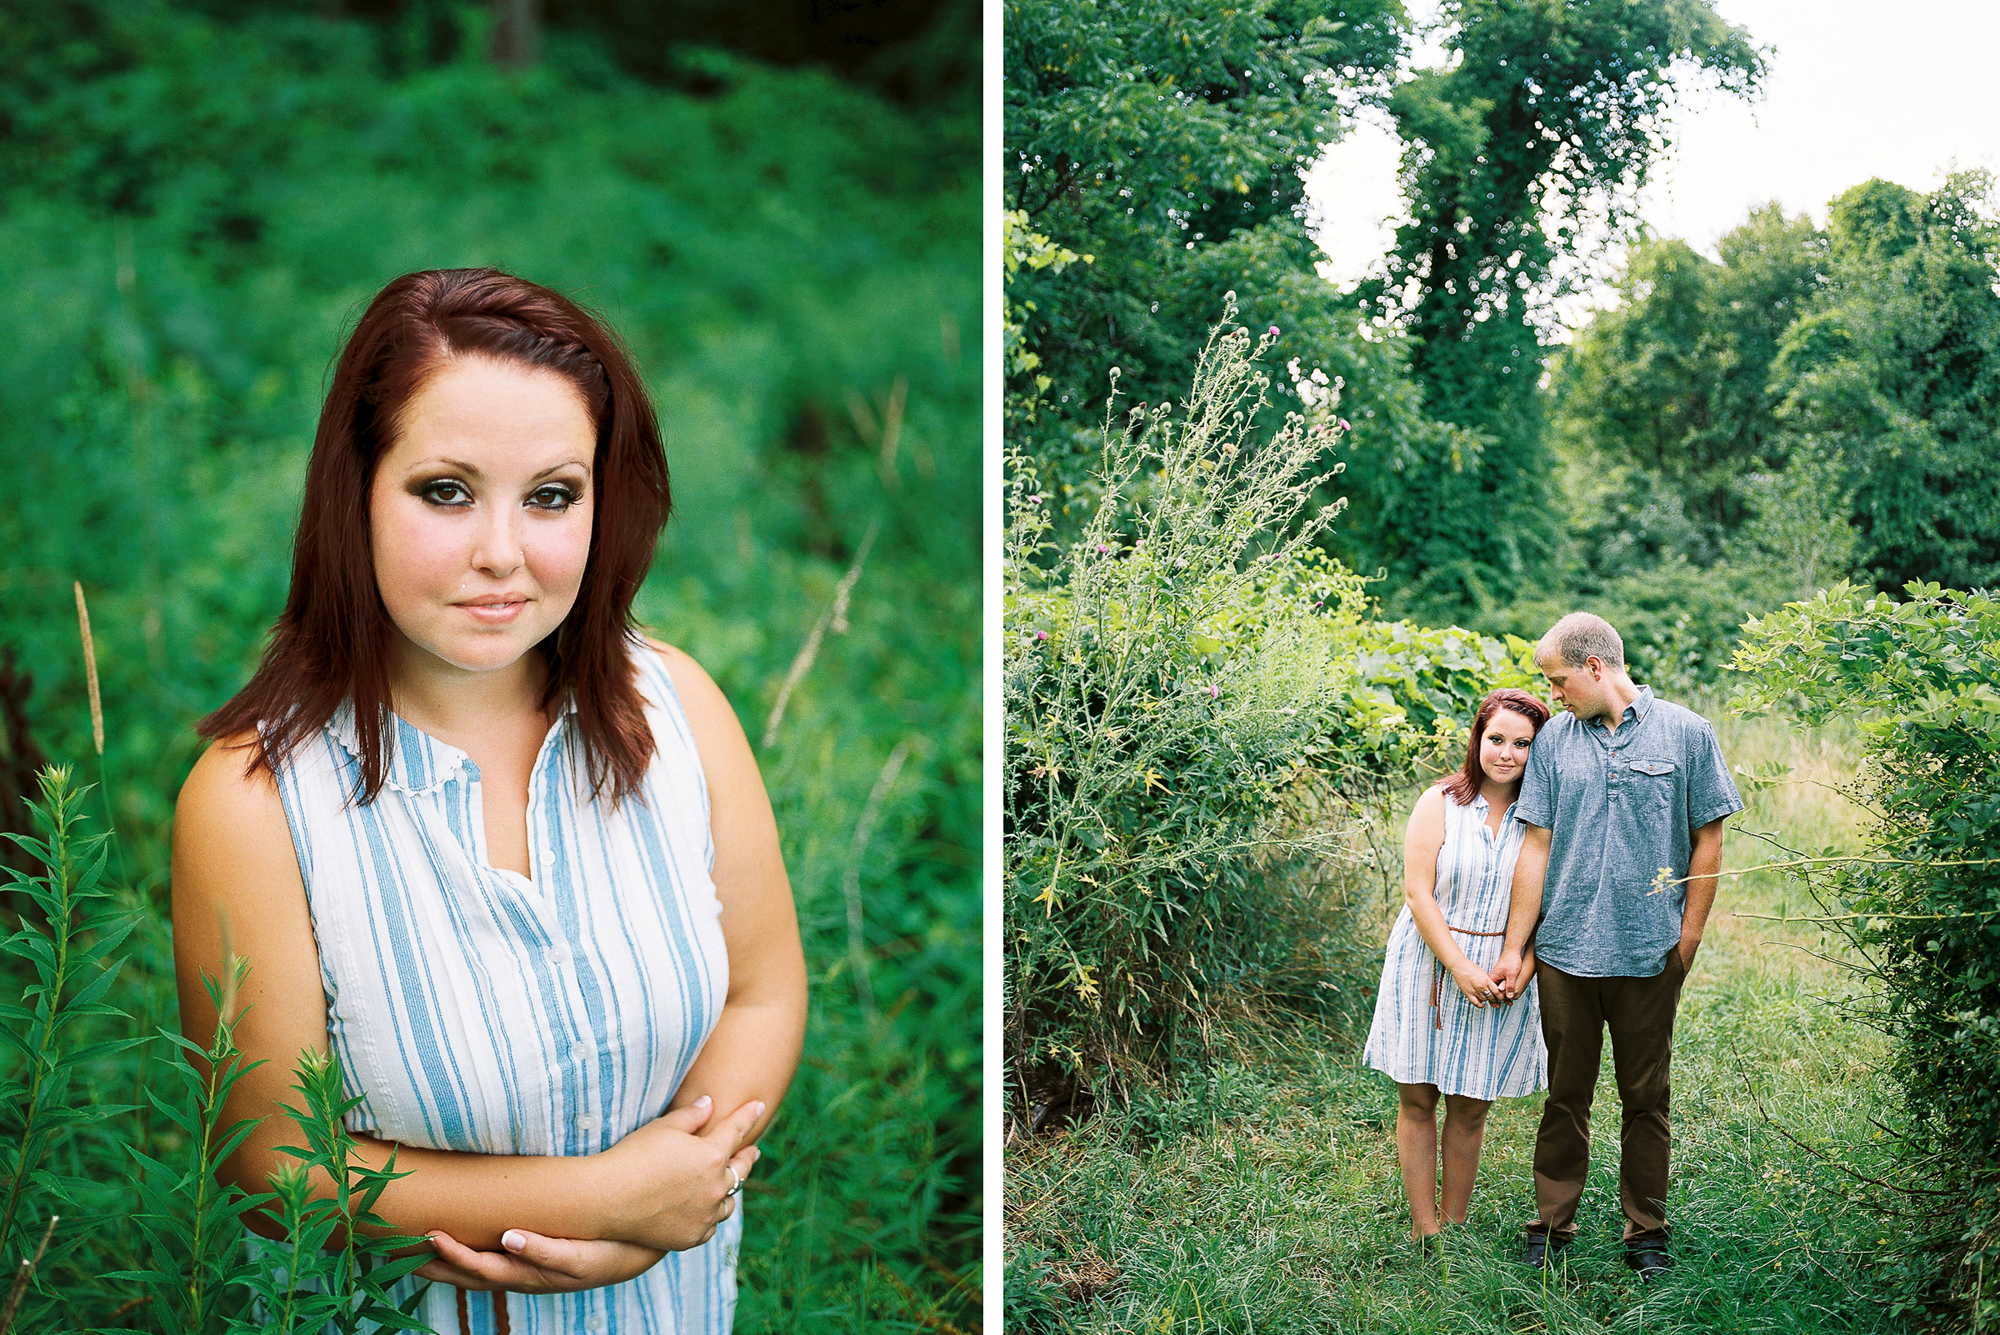 Alexandra-Elise-Photography-Ali-Reed-Film-Farm-Engagement-Session-026